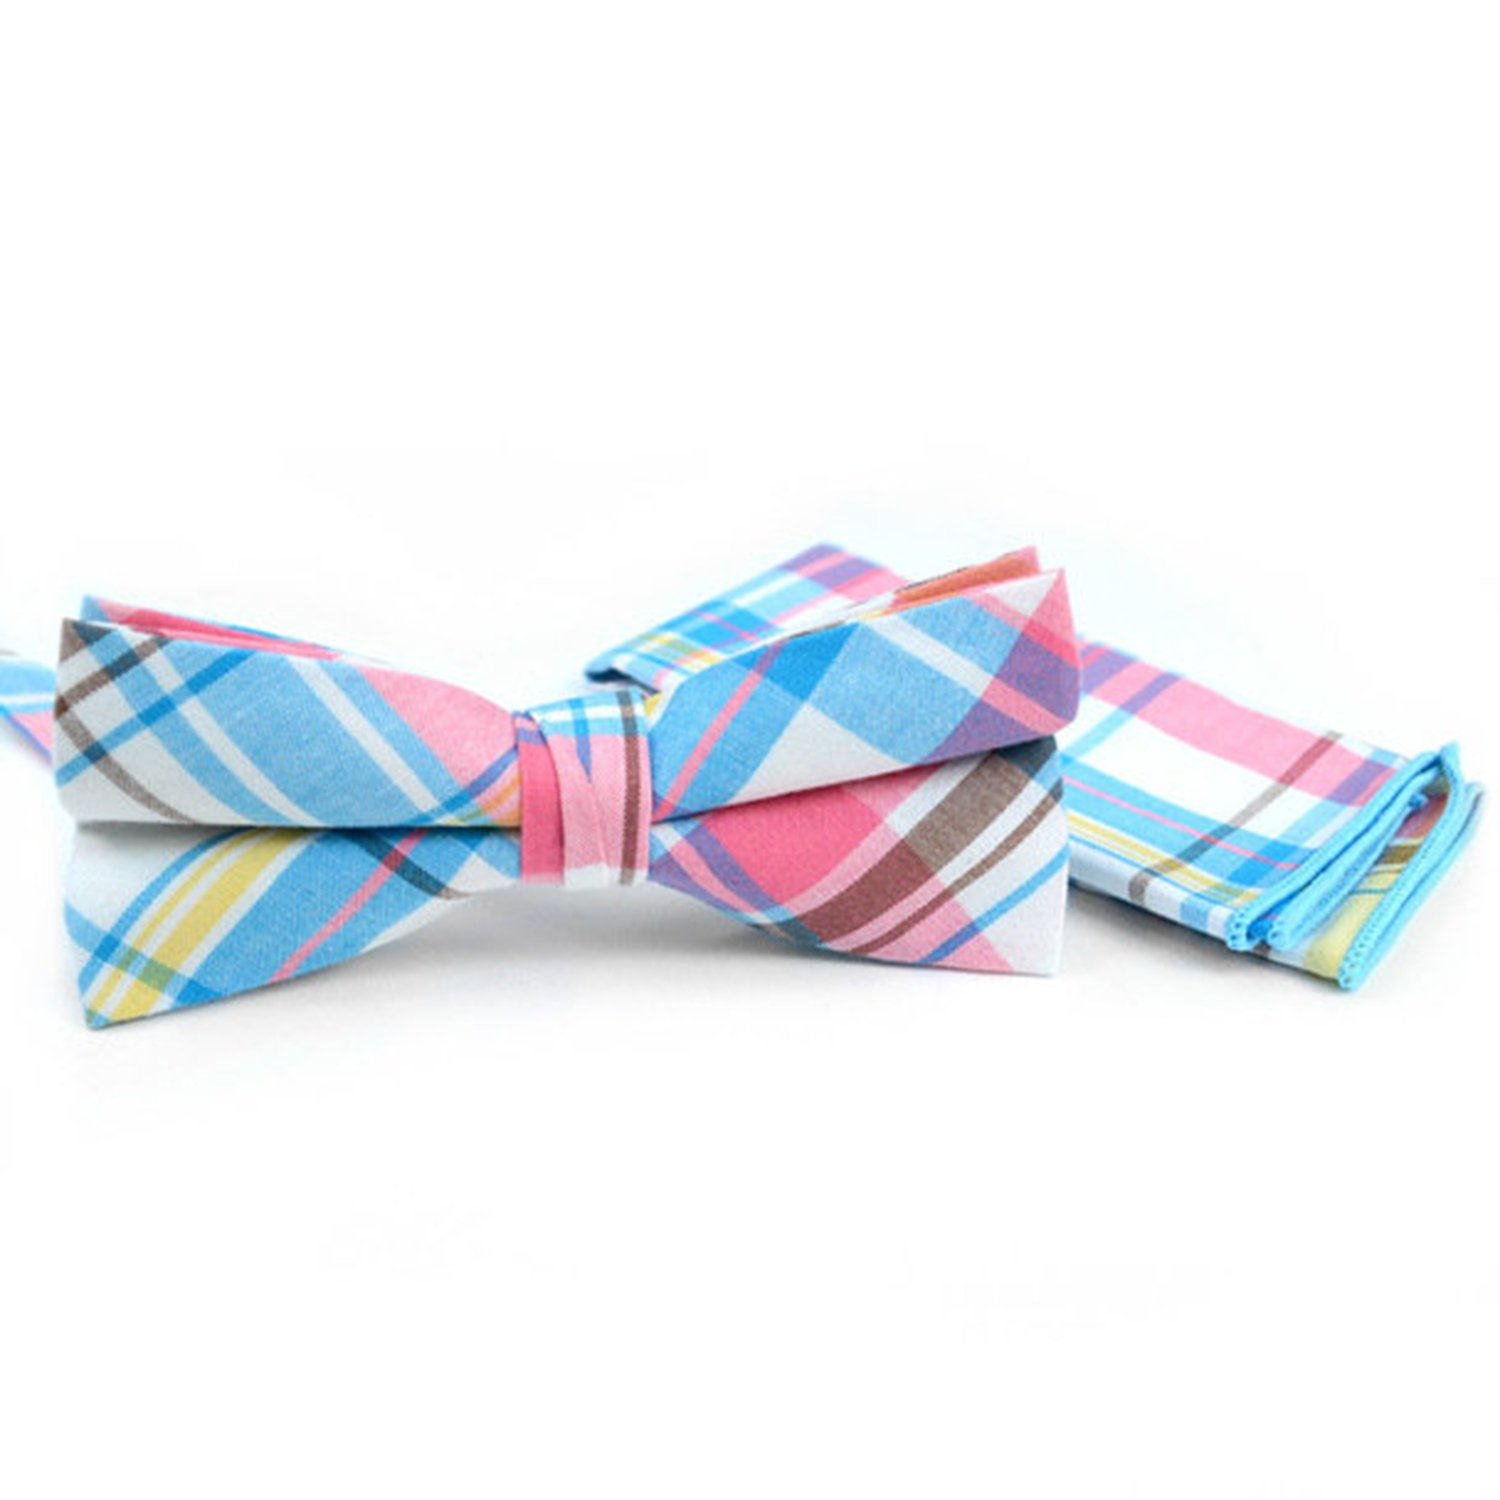 Mens Pastel Multi-colored Plaid Cotton Bow Tie and Matching Hanky Set